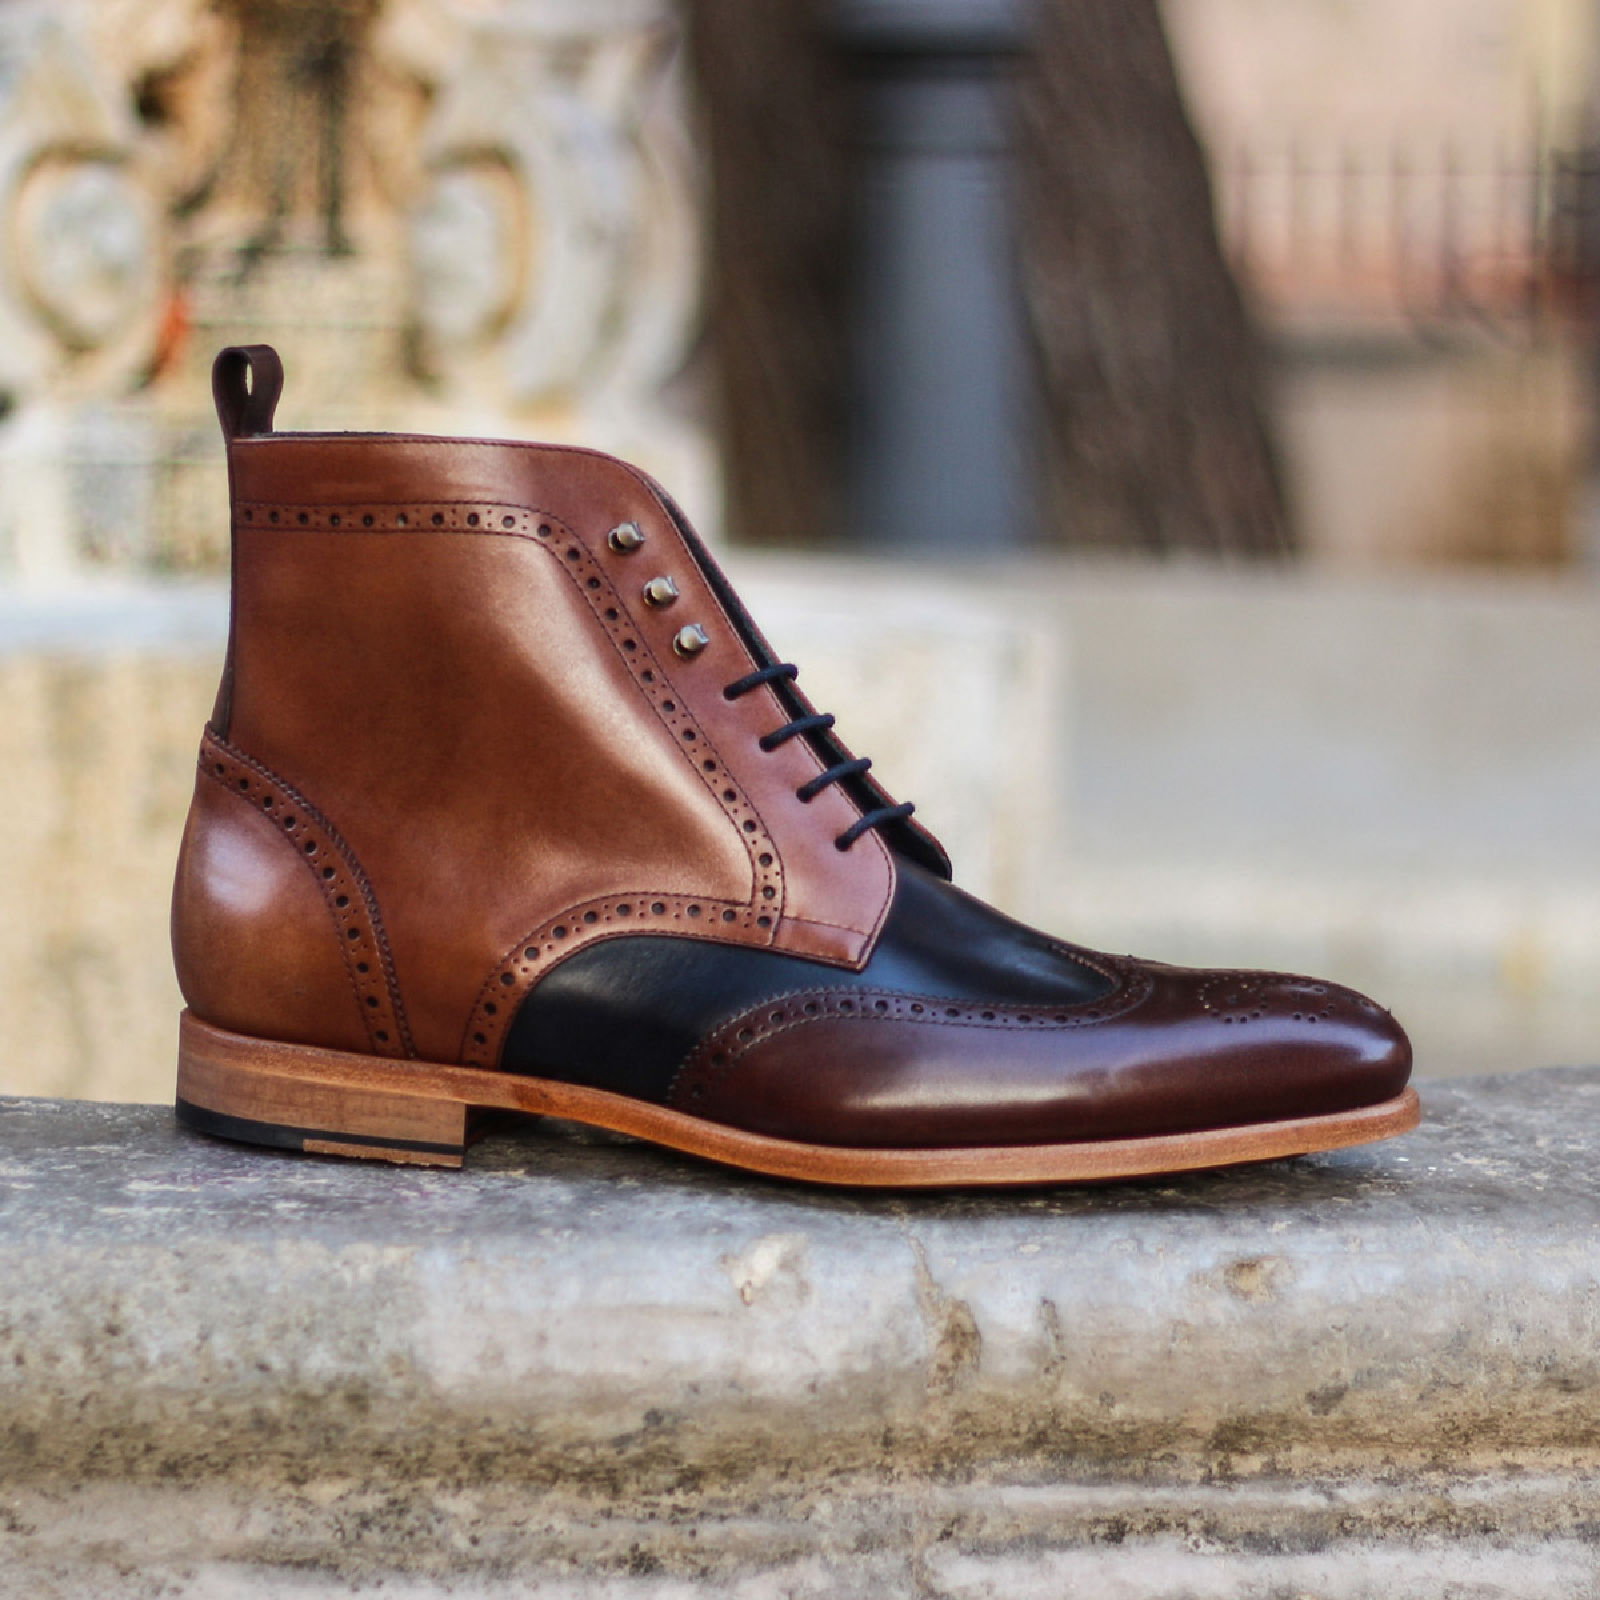 Military brogue  burgundy painted calf + med brown painted calf + navy painted calf : 250€